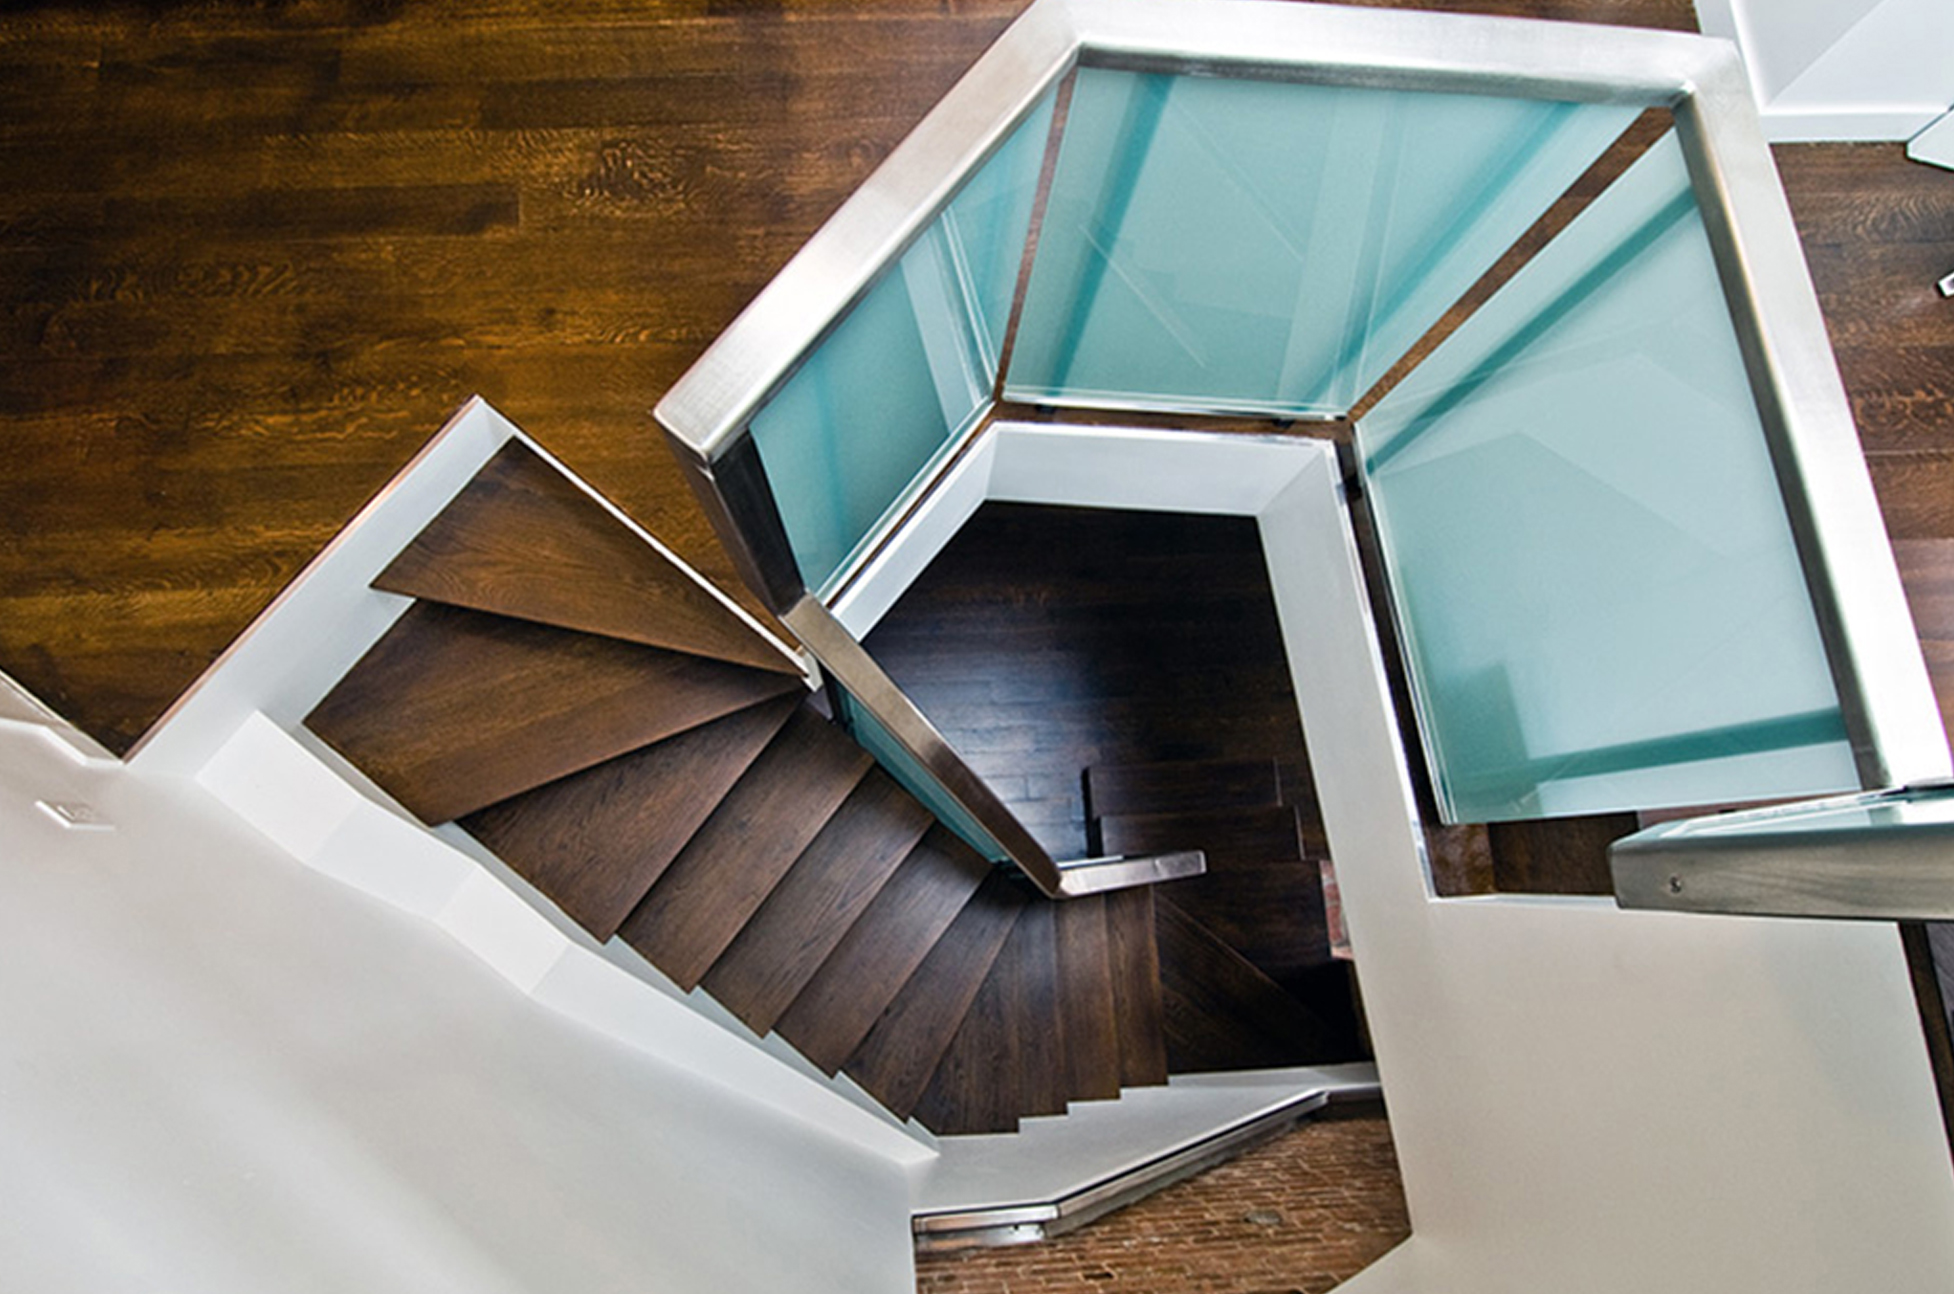 Fabricated custom steel staircase in a duplex NYC apartment. Here a NYC contractor used steel, stainless steel, stained wood and safety glass cantilever from brick wall. A nyc structurall engineer services were engaged Jane St - West Village NYC new york city